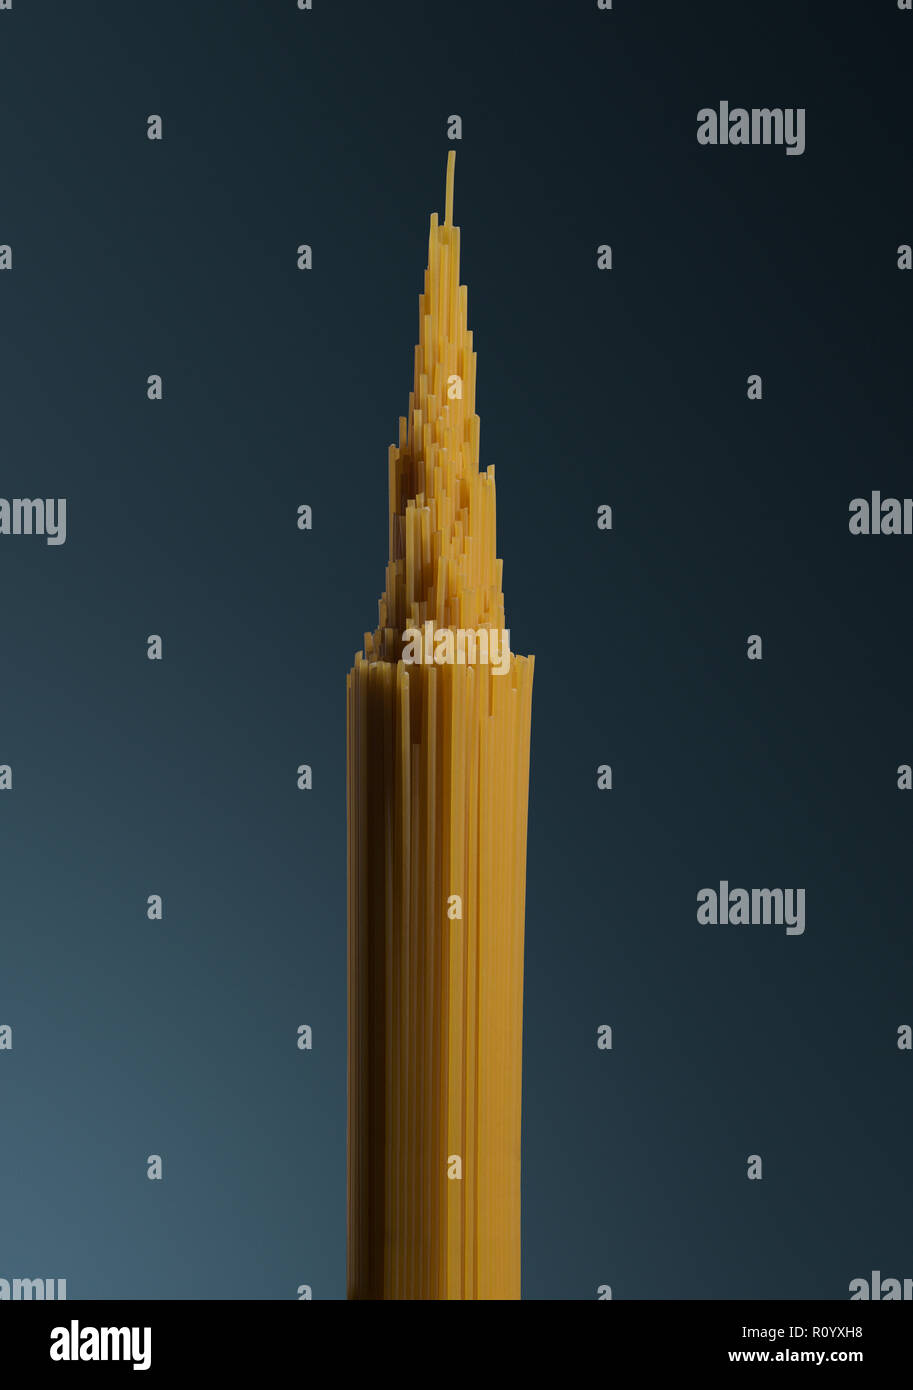 Bunch of raw uncooked spaghetti shaped as pointed tower structure, Empire State Building - Stock Image